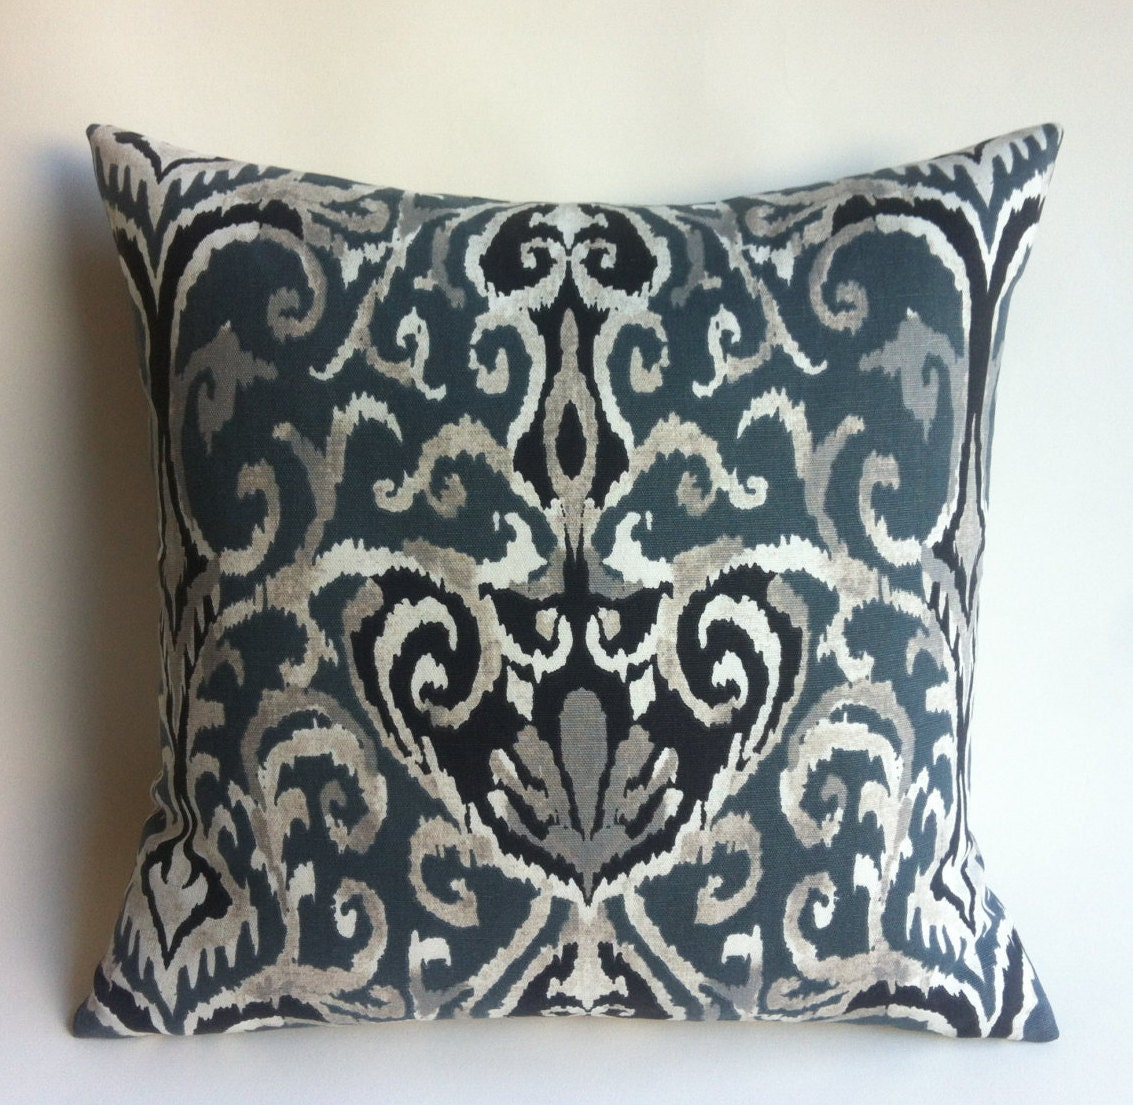 Decorative Pillows With Zippers : French Quarter Damask Decorative Zipper Pillow Cover 22x22